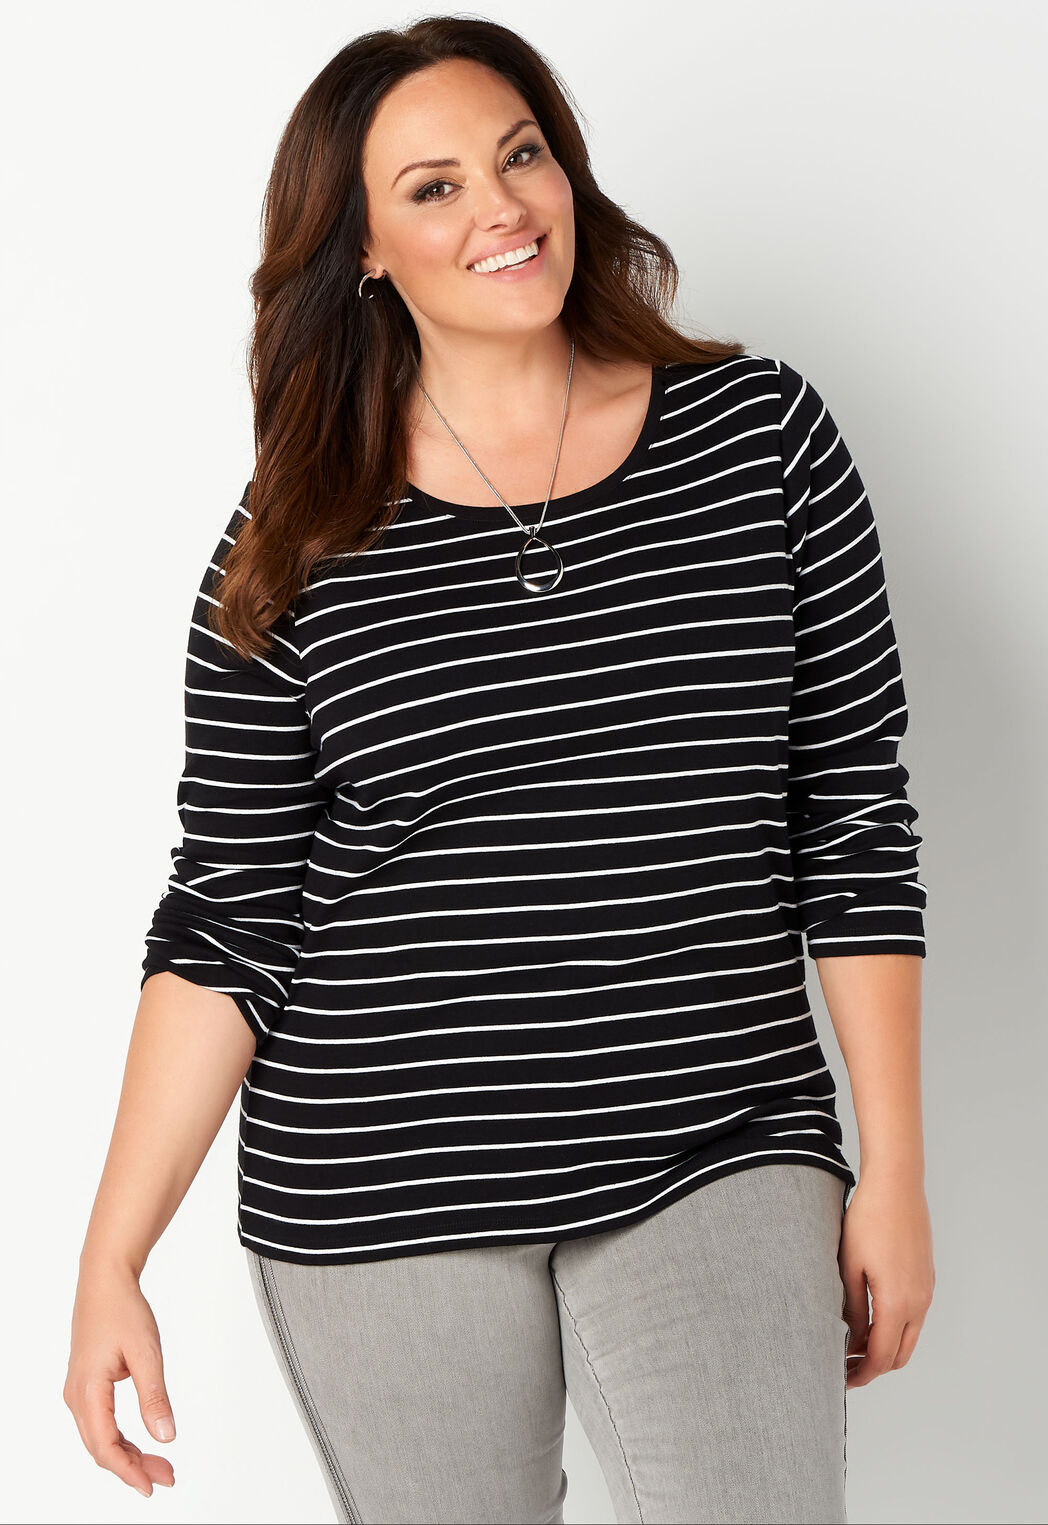 91f171b11a8 ... Tops Long Sleeve Stripe Essential Crewneck Plus Size Tee. add to wish  list · add to wish list